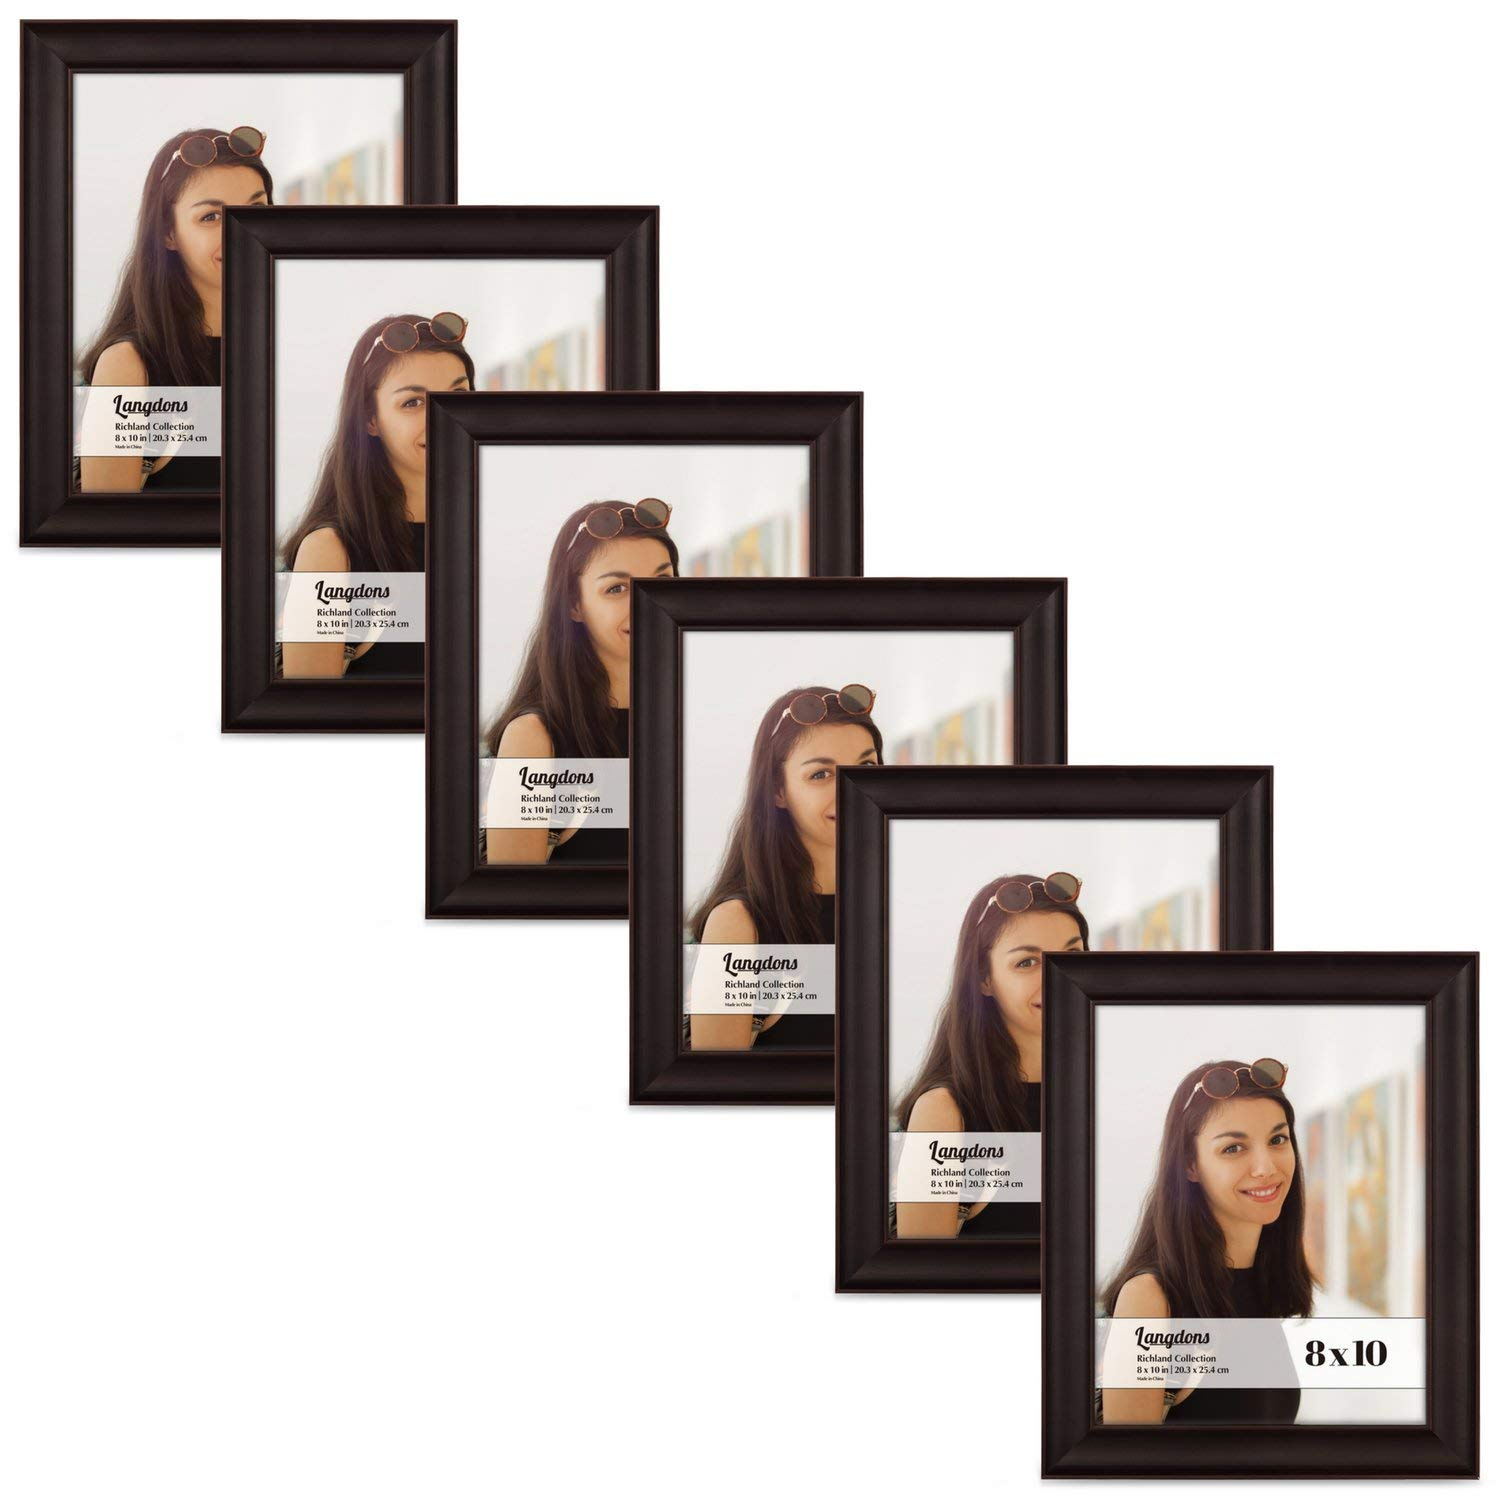 Langdons 8x10 Picture Frame Set (6-Pack, Dark Brown) Solid Wood Photo Picture Frames 8x10, Wall Hanging or Table Top, Display Picture Frame 8x10 Vertically or 10 x 8 Horizontally, Richland Series